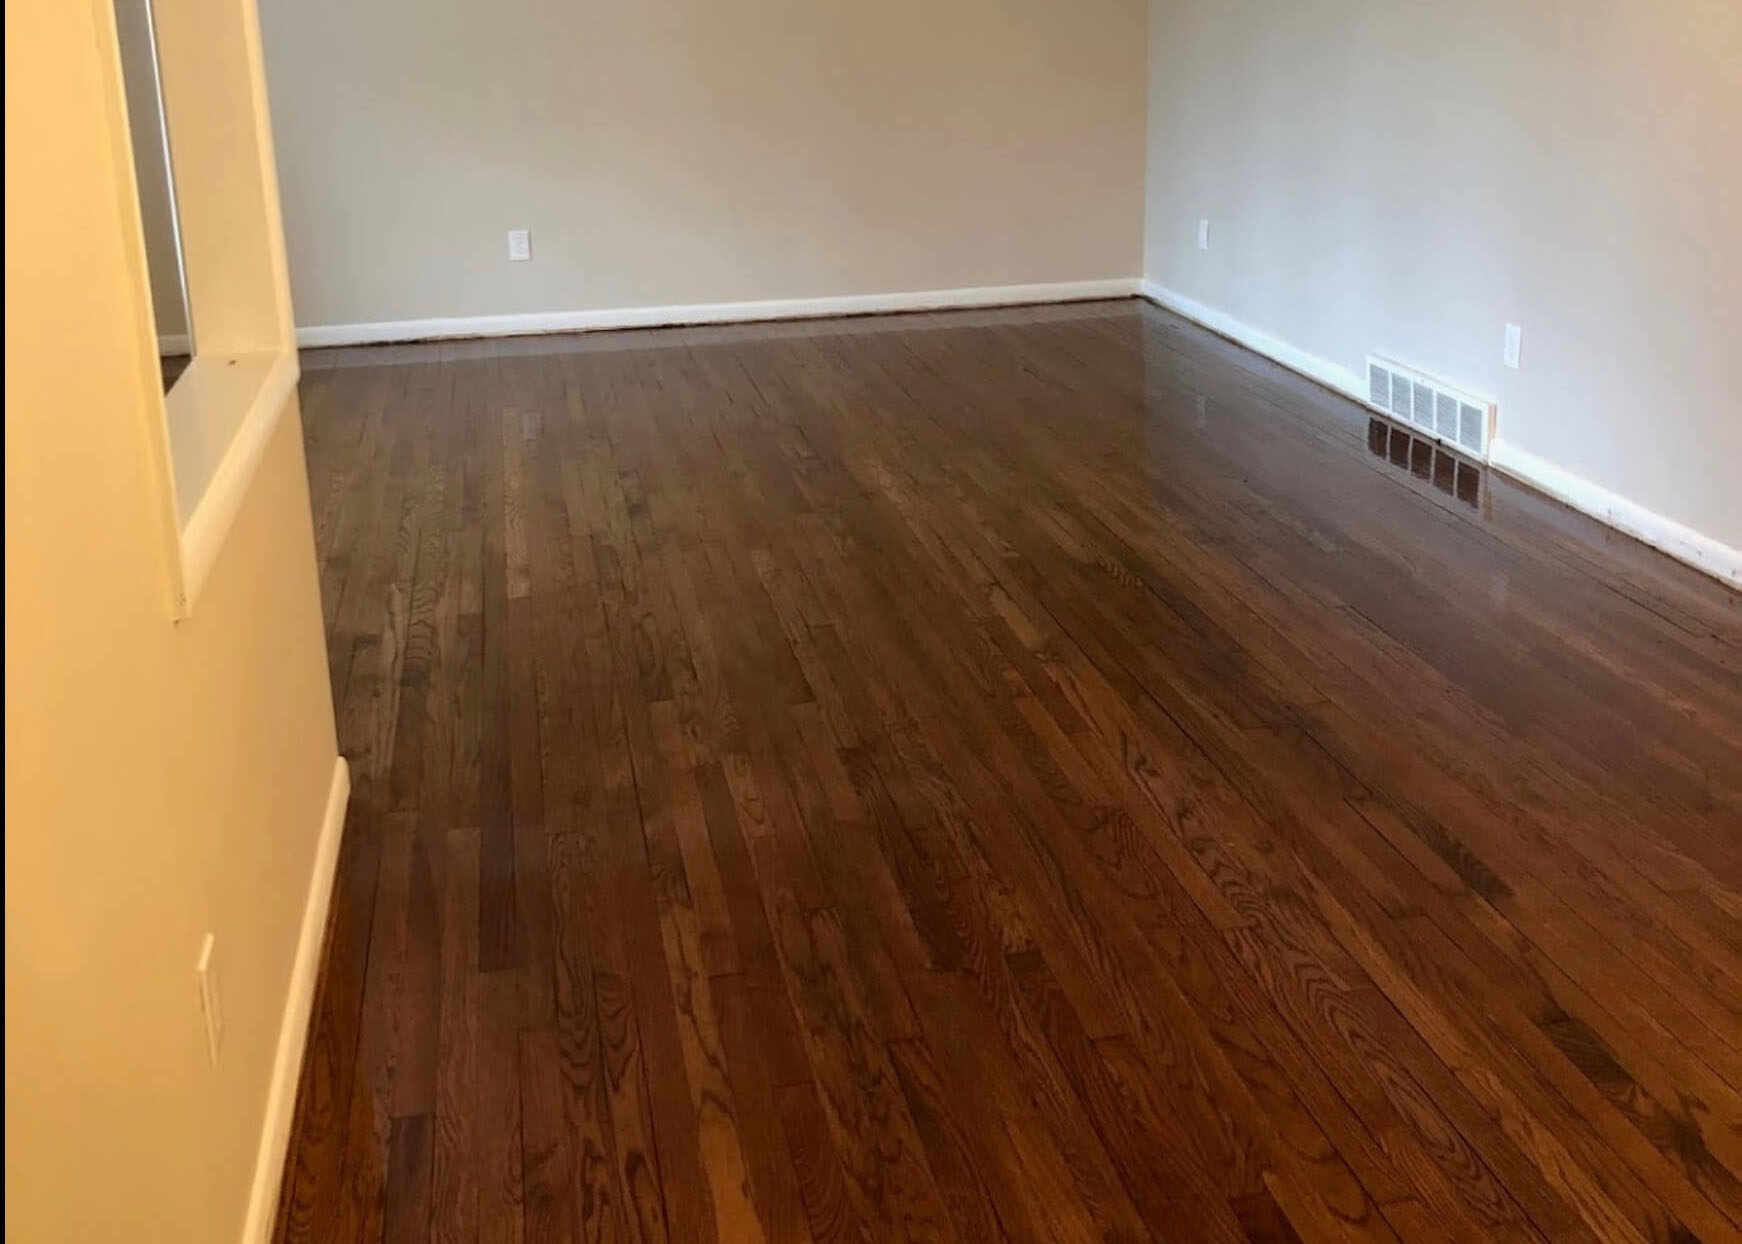 a resurfaced hardwood floor in denver, co